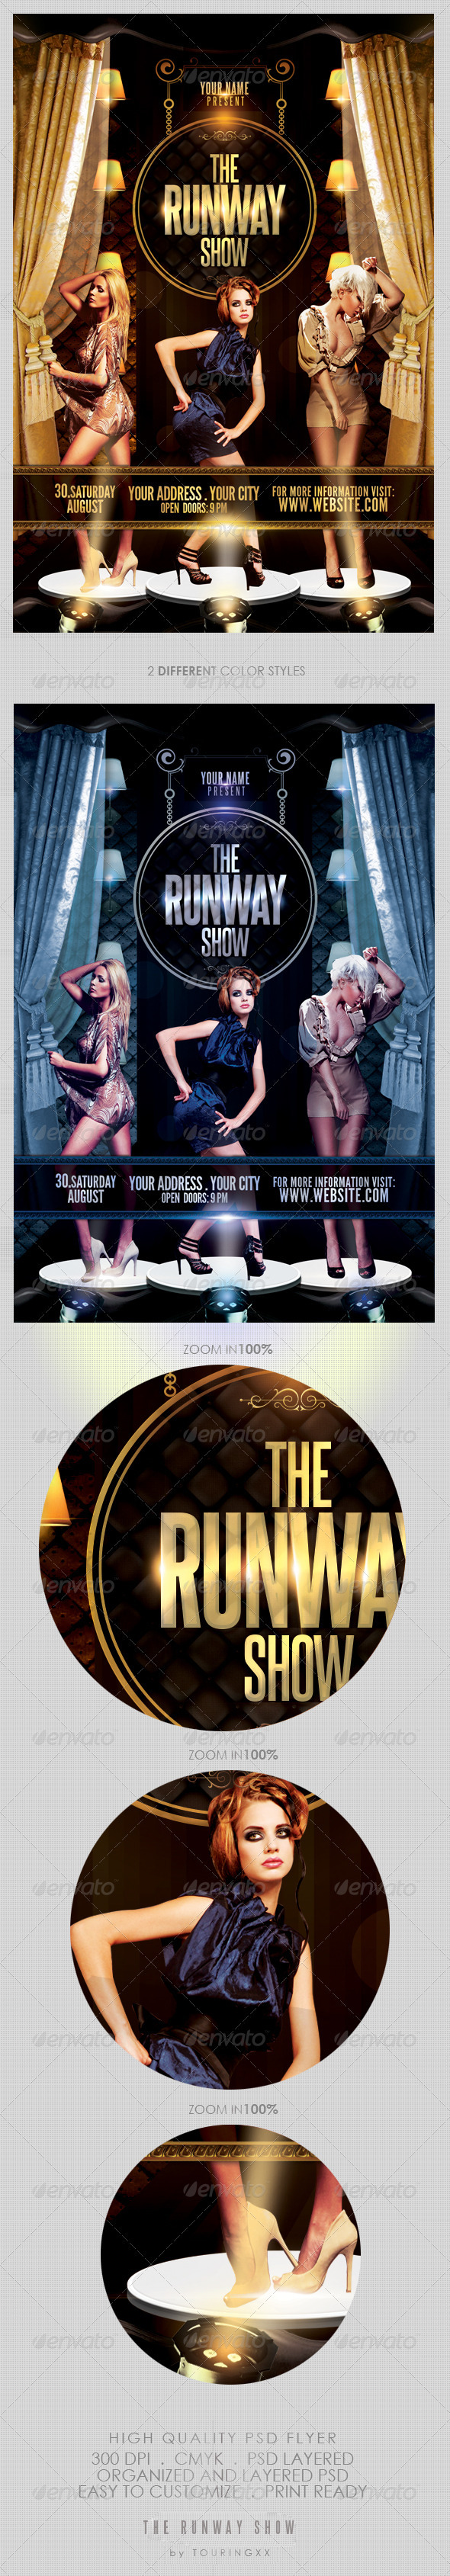 The Runway Show Flyer Template GraphicRiver - Print Templates -  Flyers  Events  Clubs & Parties 2563655